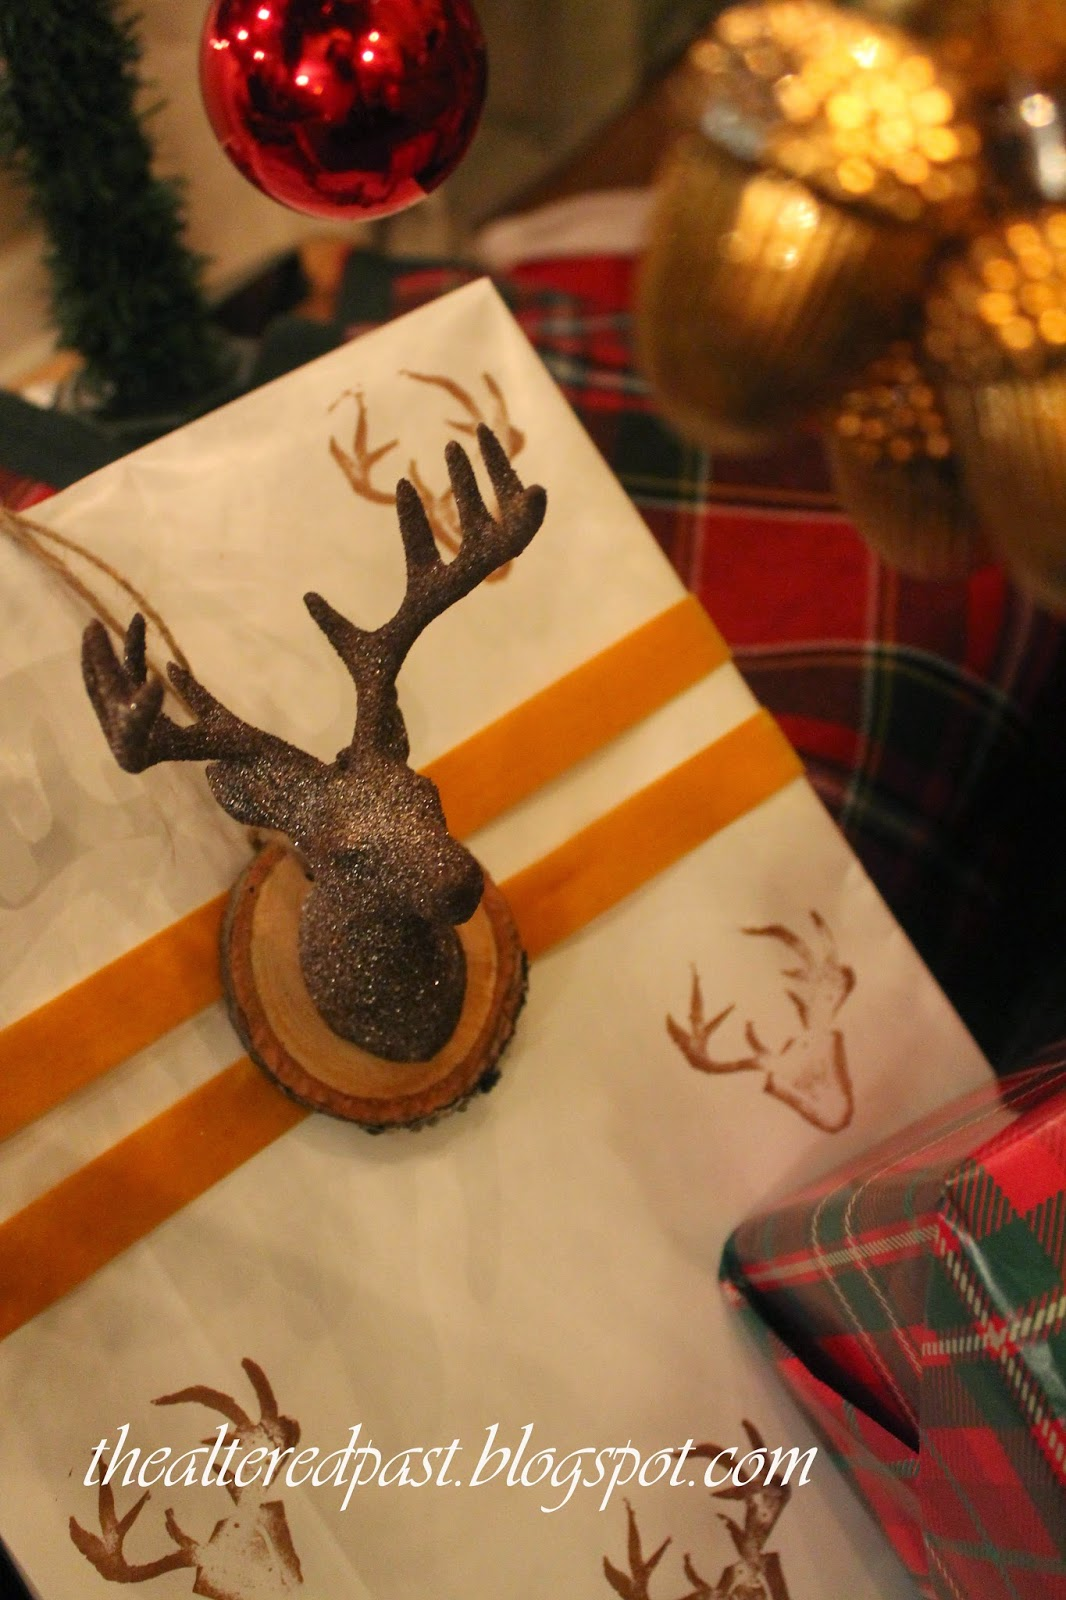 hunt themed gift wrap, the altered past blog